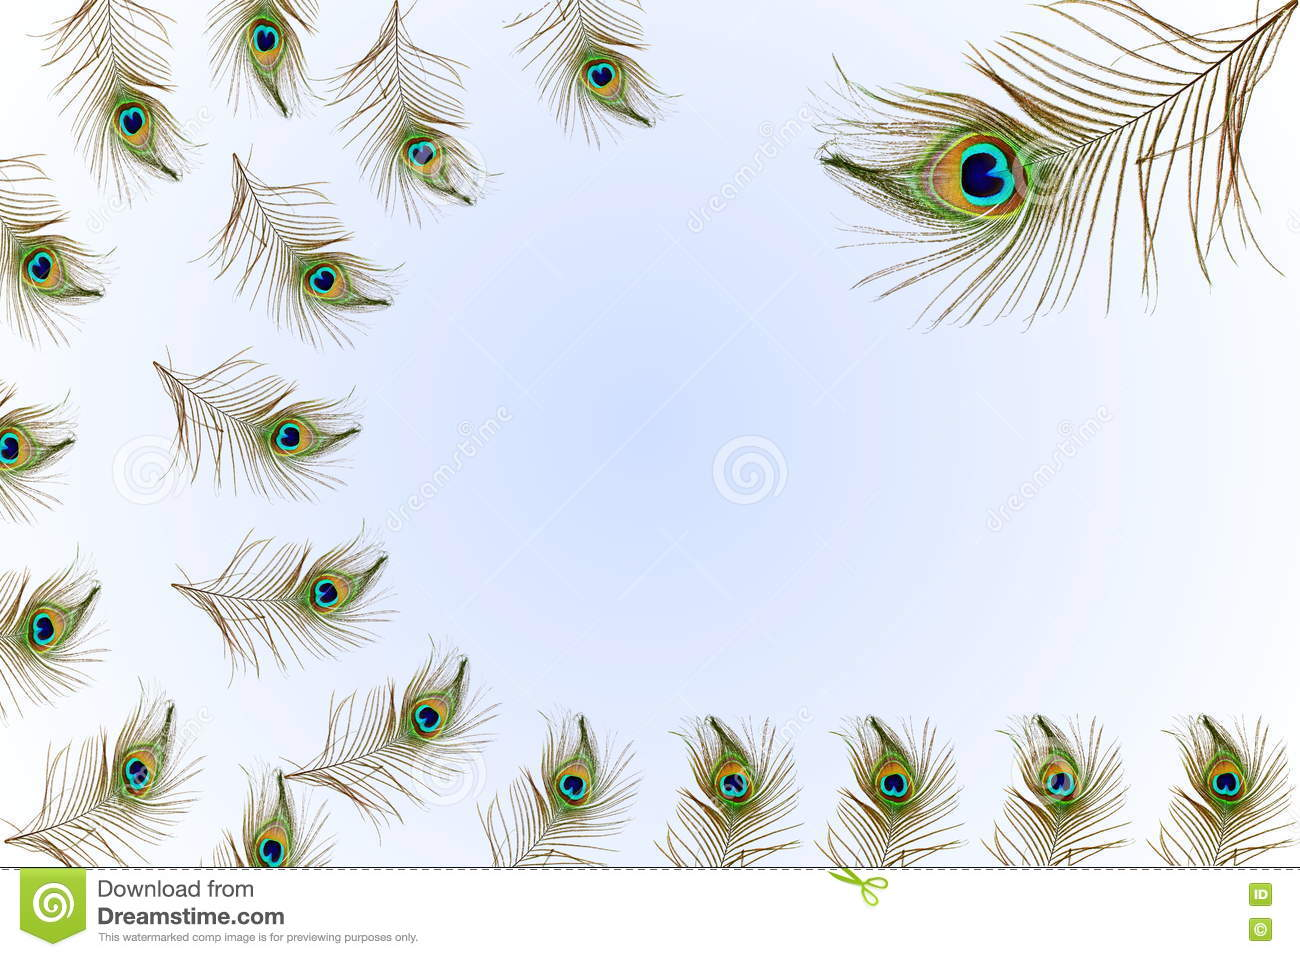 Beautiful peacock feathers as background with text copy space